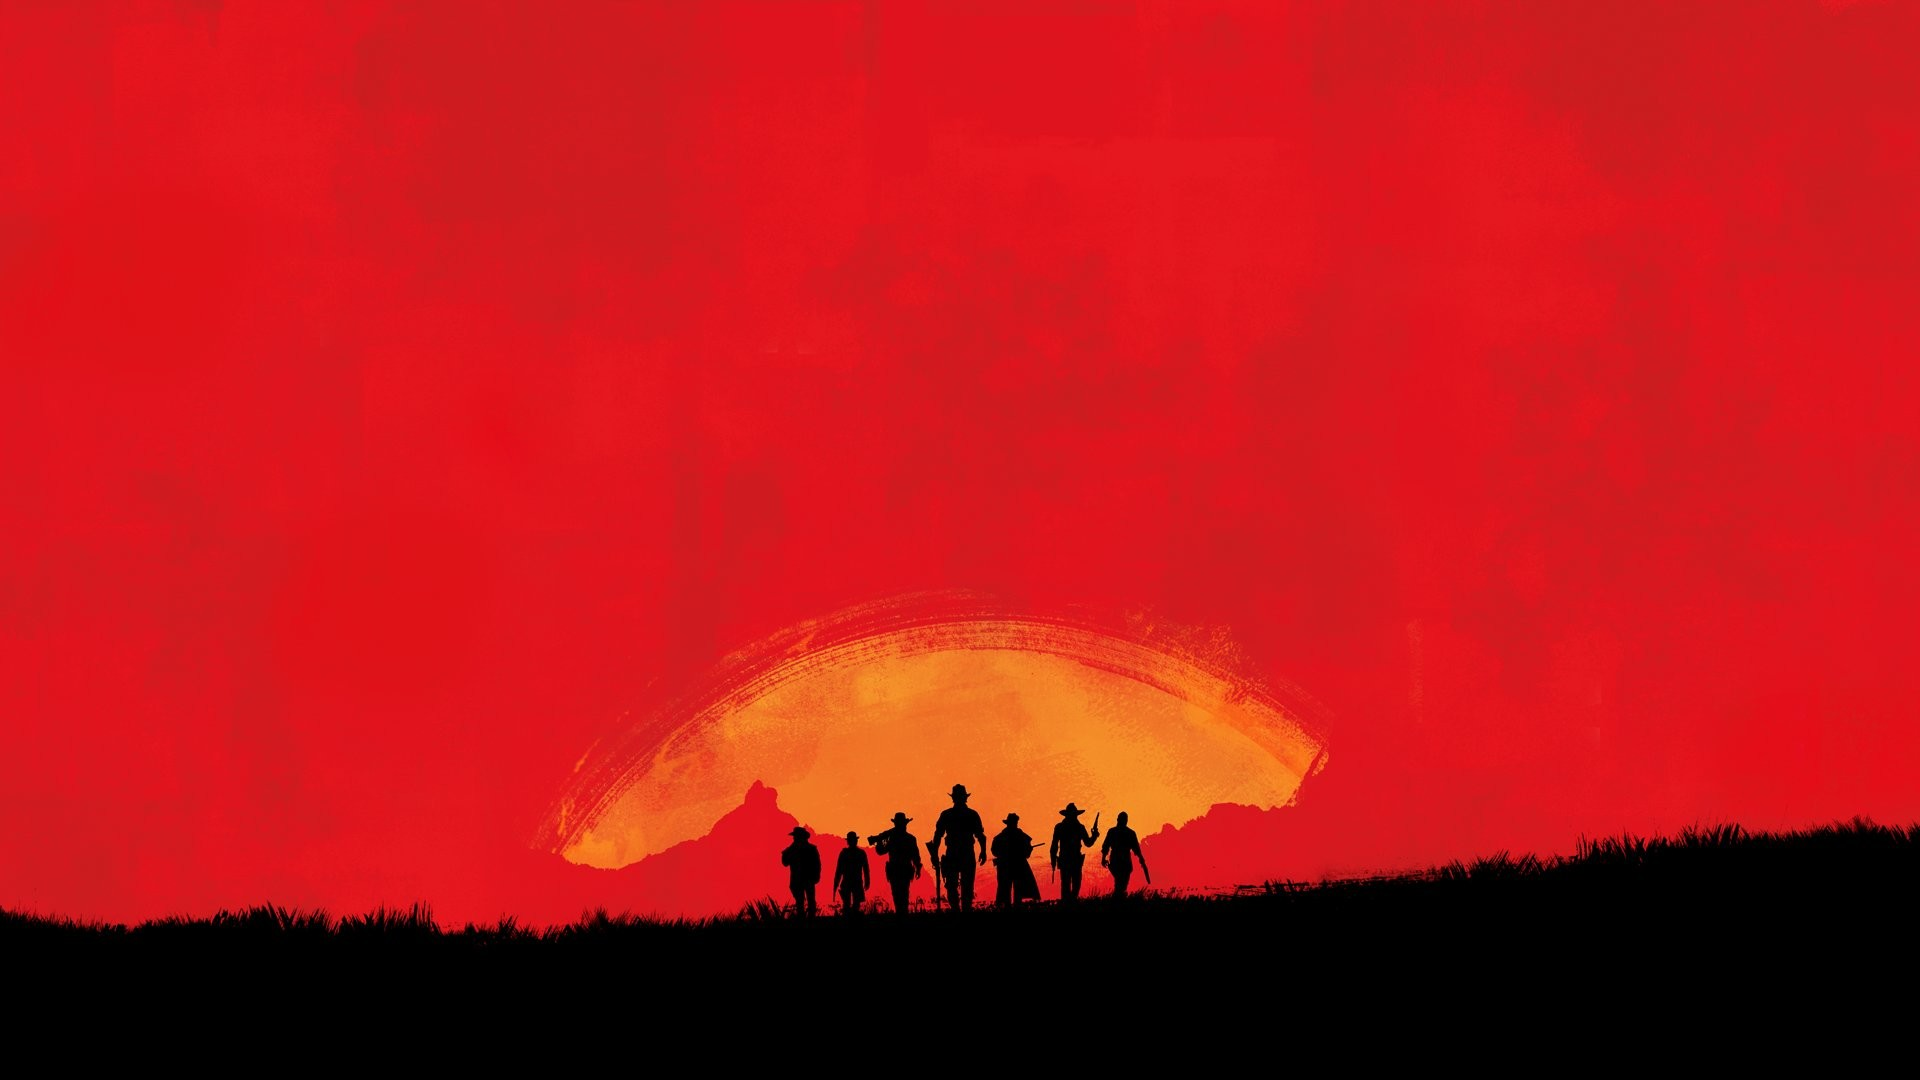 Res: 1920x1080, Red Dead Redemption 2 is an homage to Seven Samurai